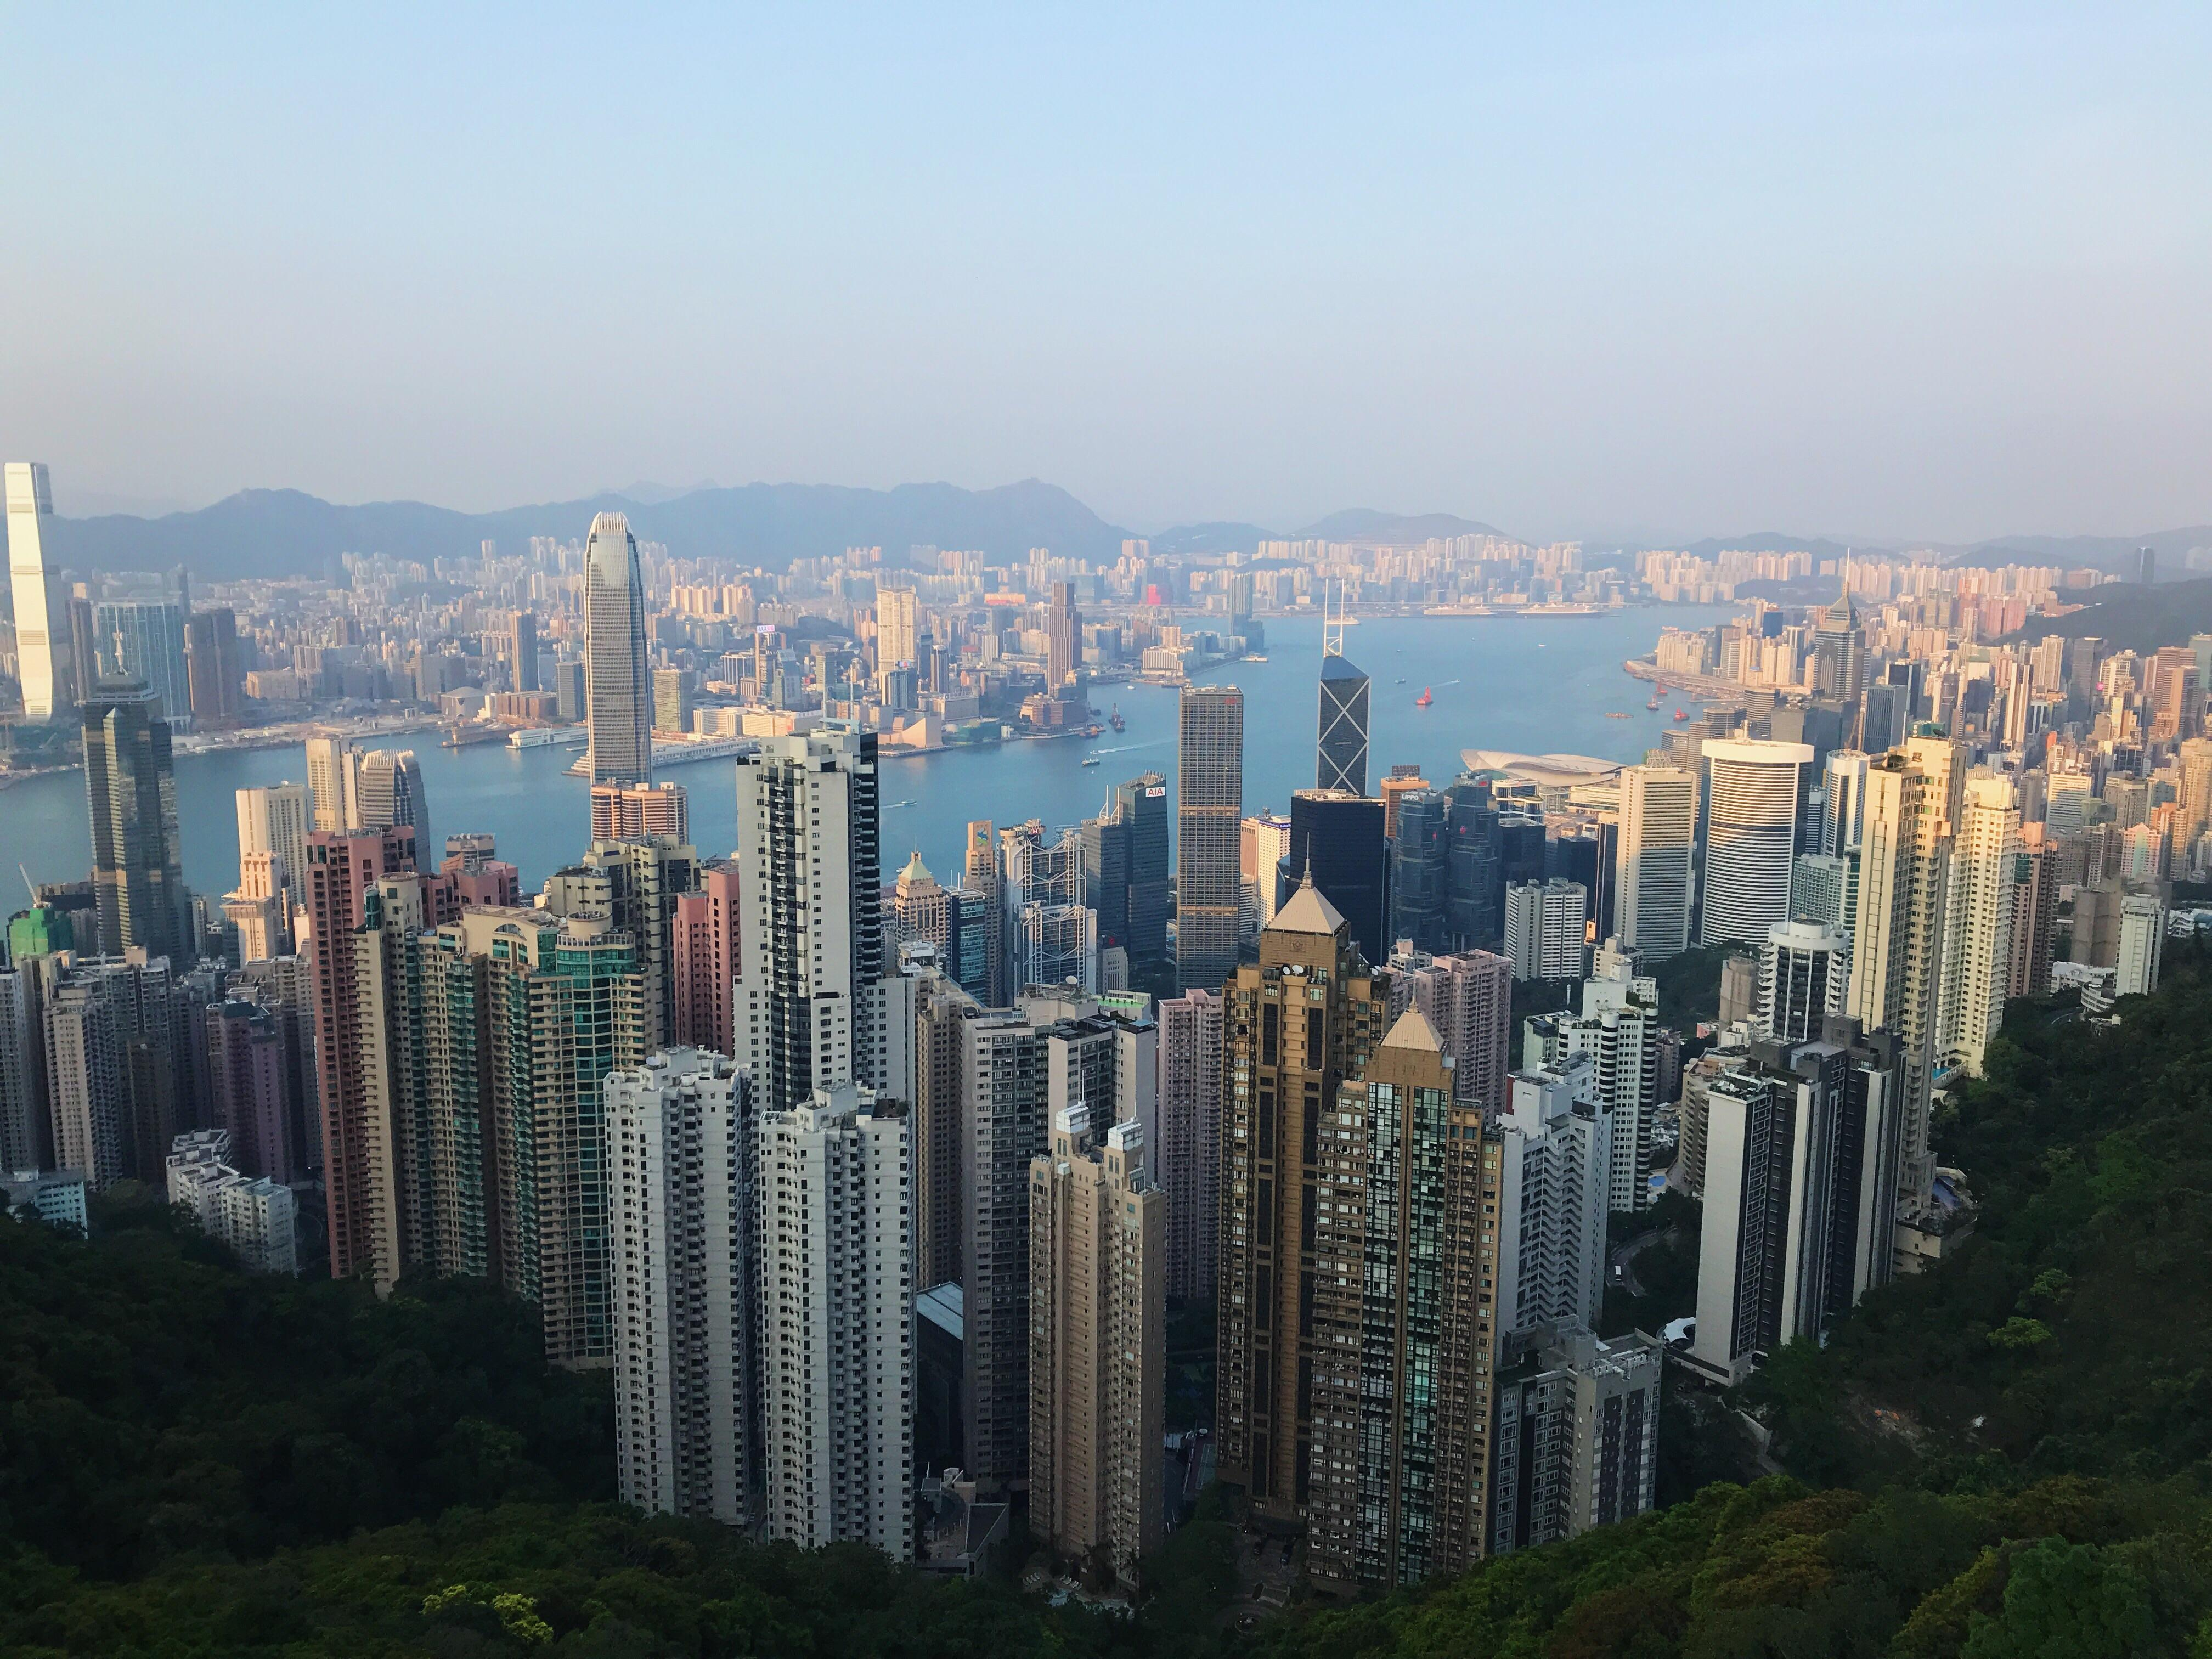 Just got home from a week's trip to HK! Definitely the most amazing city I've been too! : HongKong